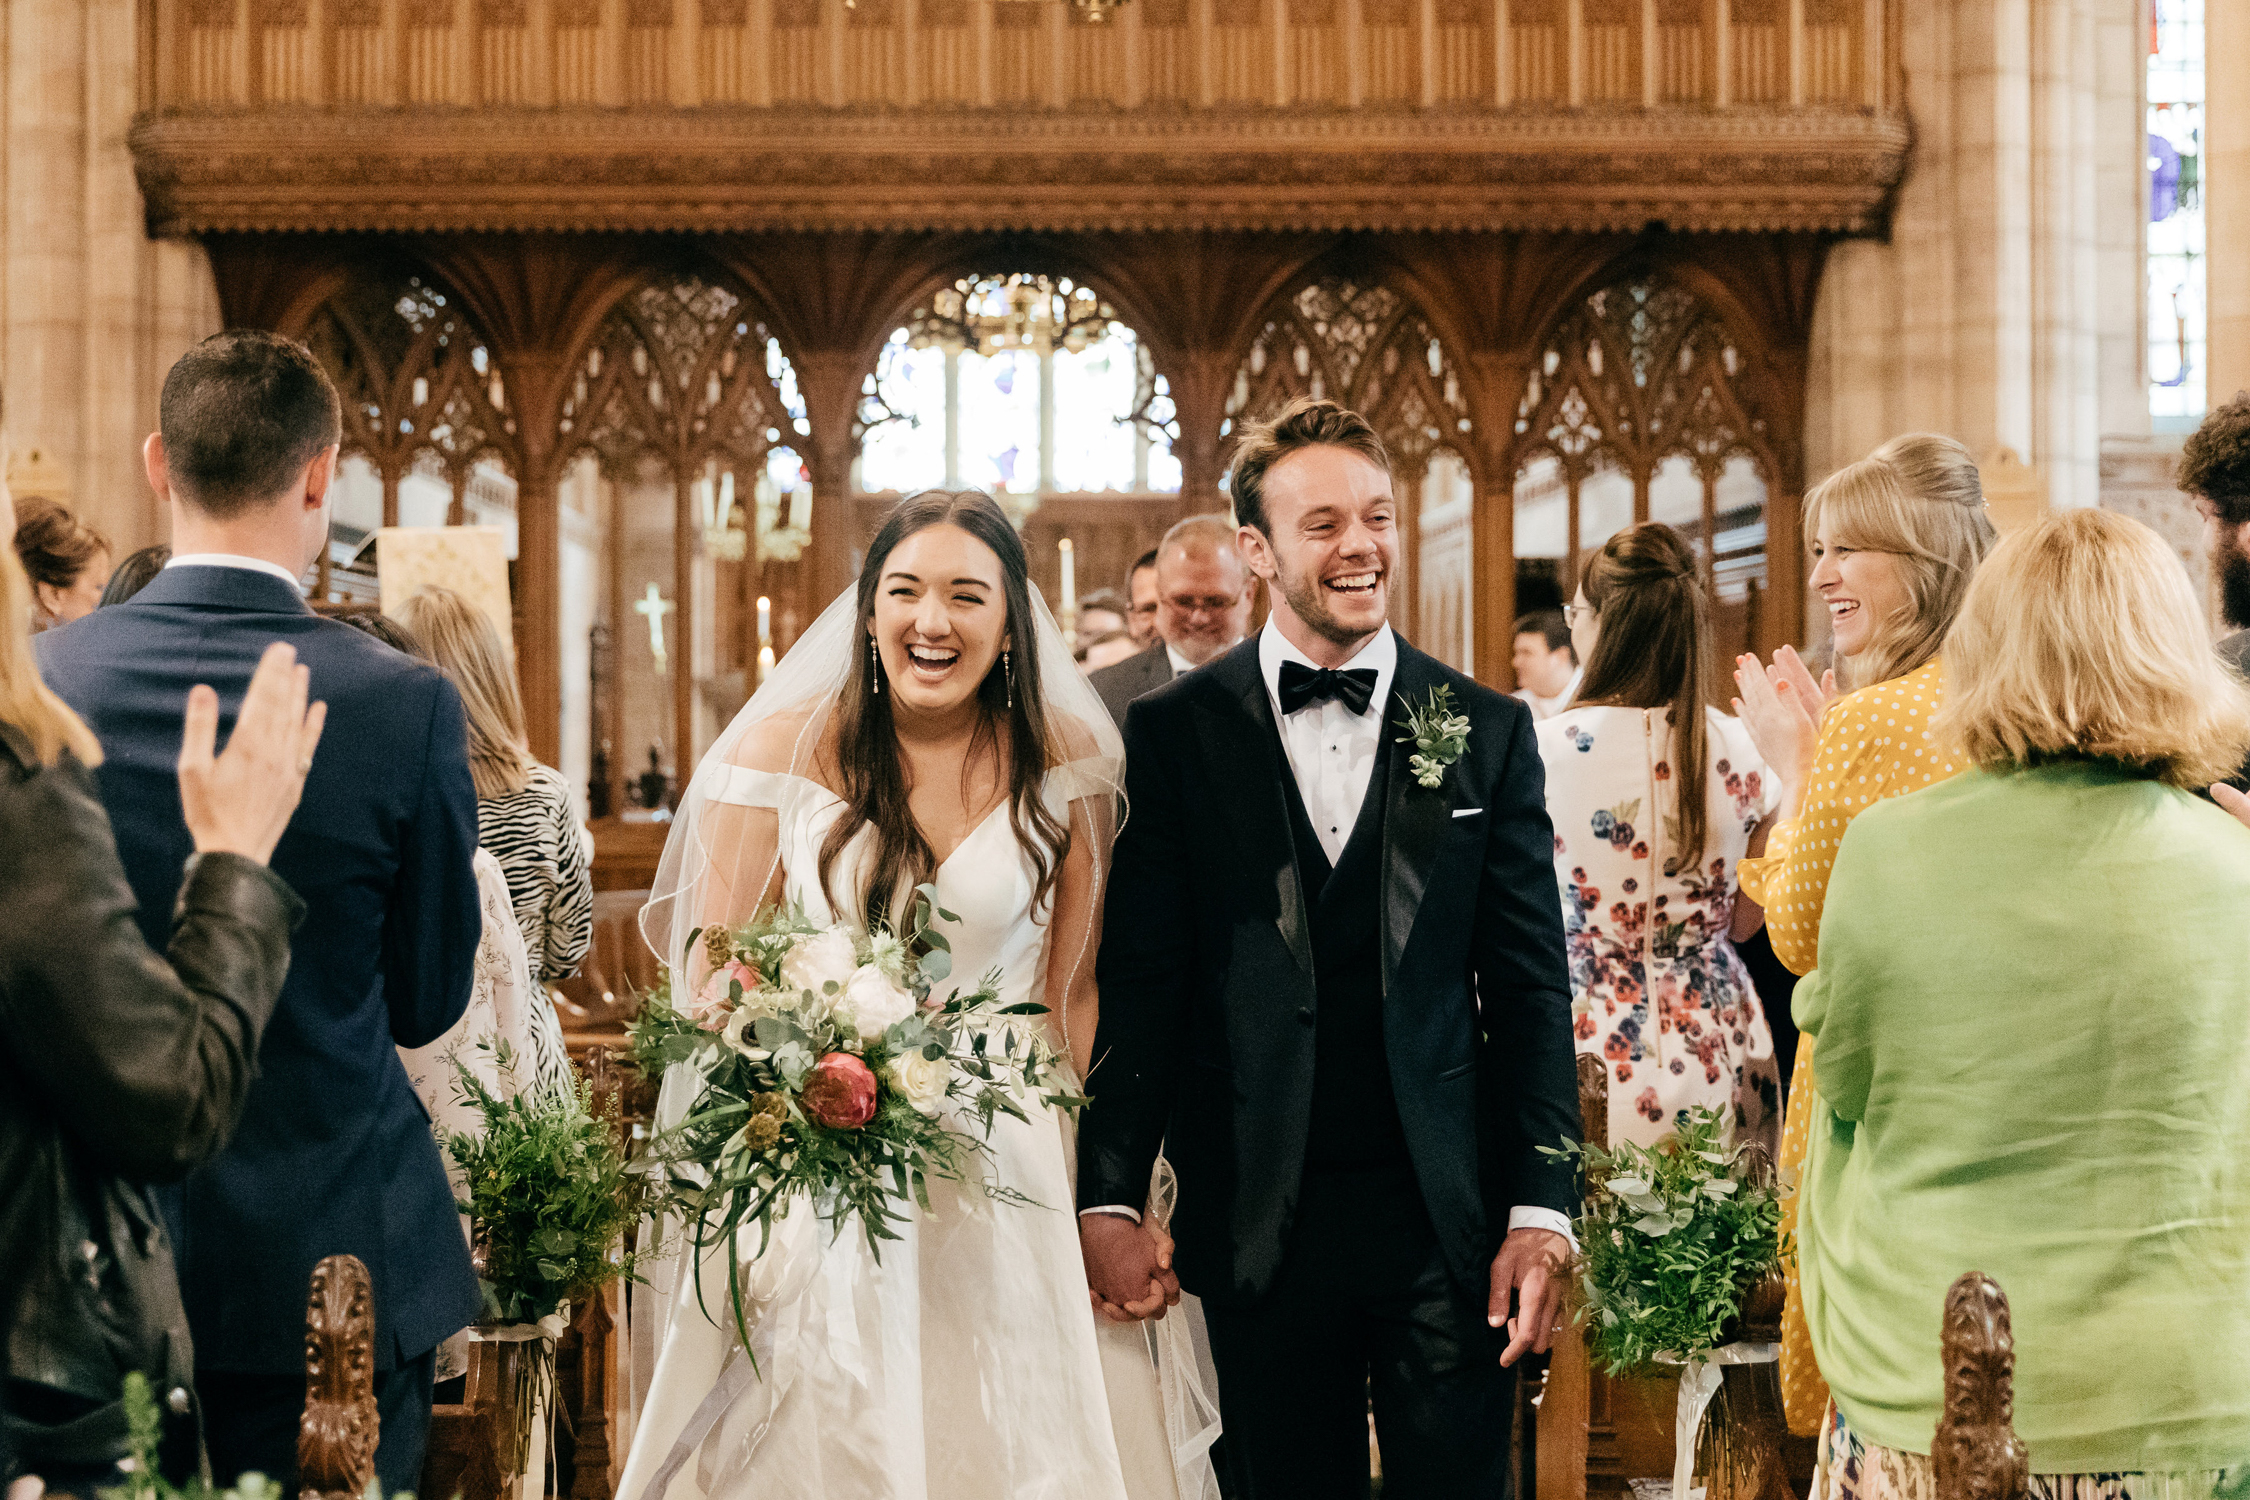 candid wedding photo of happy couple walking down church aisle together at the end of wedding ceremony